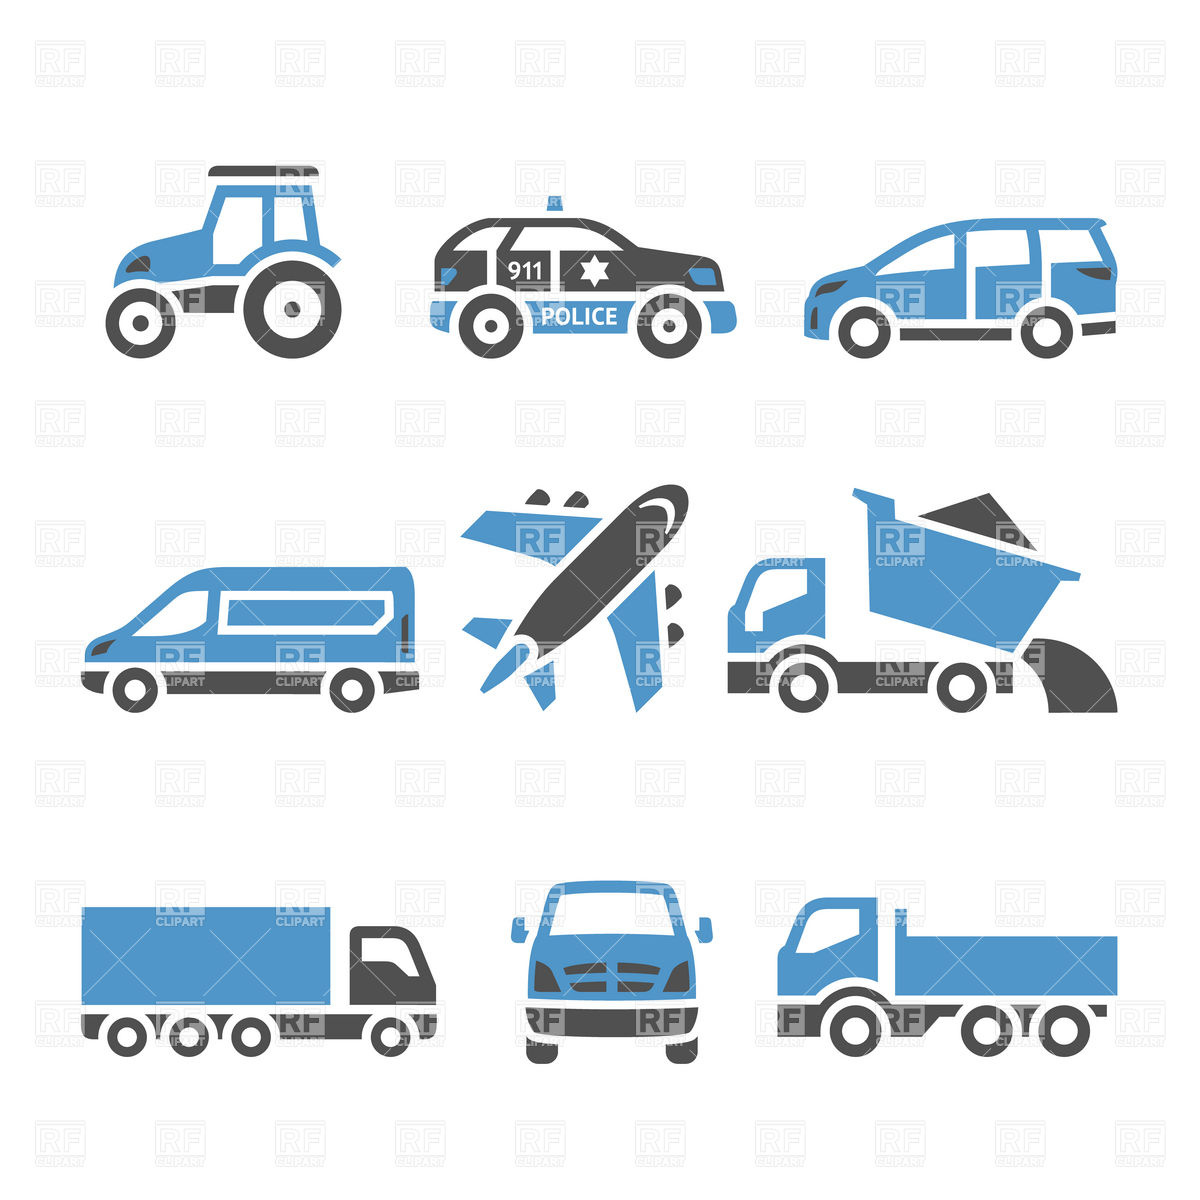 Transportation clipart icon - 70 transparent clip arts ... vector stock